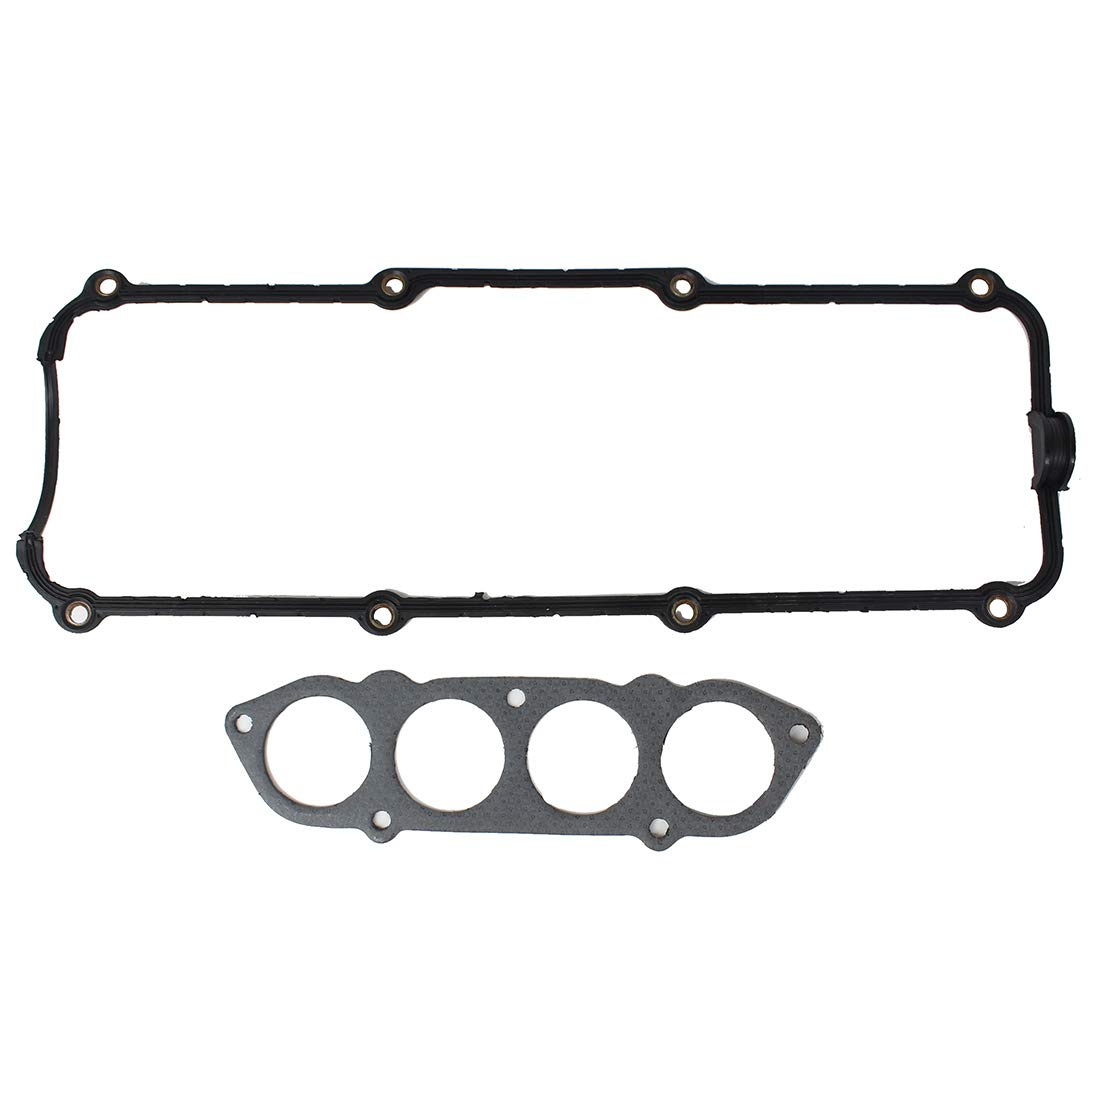 DNJ Engine Components VC809G Valve Cover Gasket